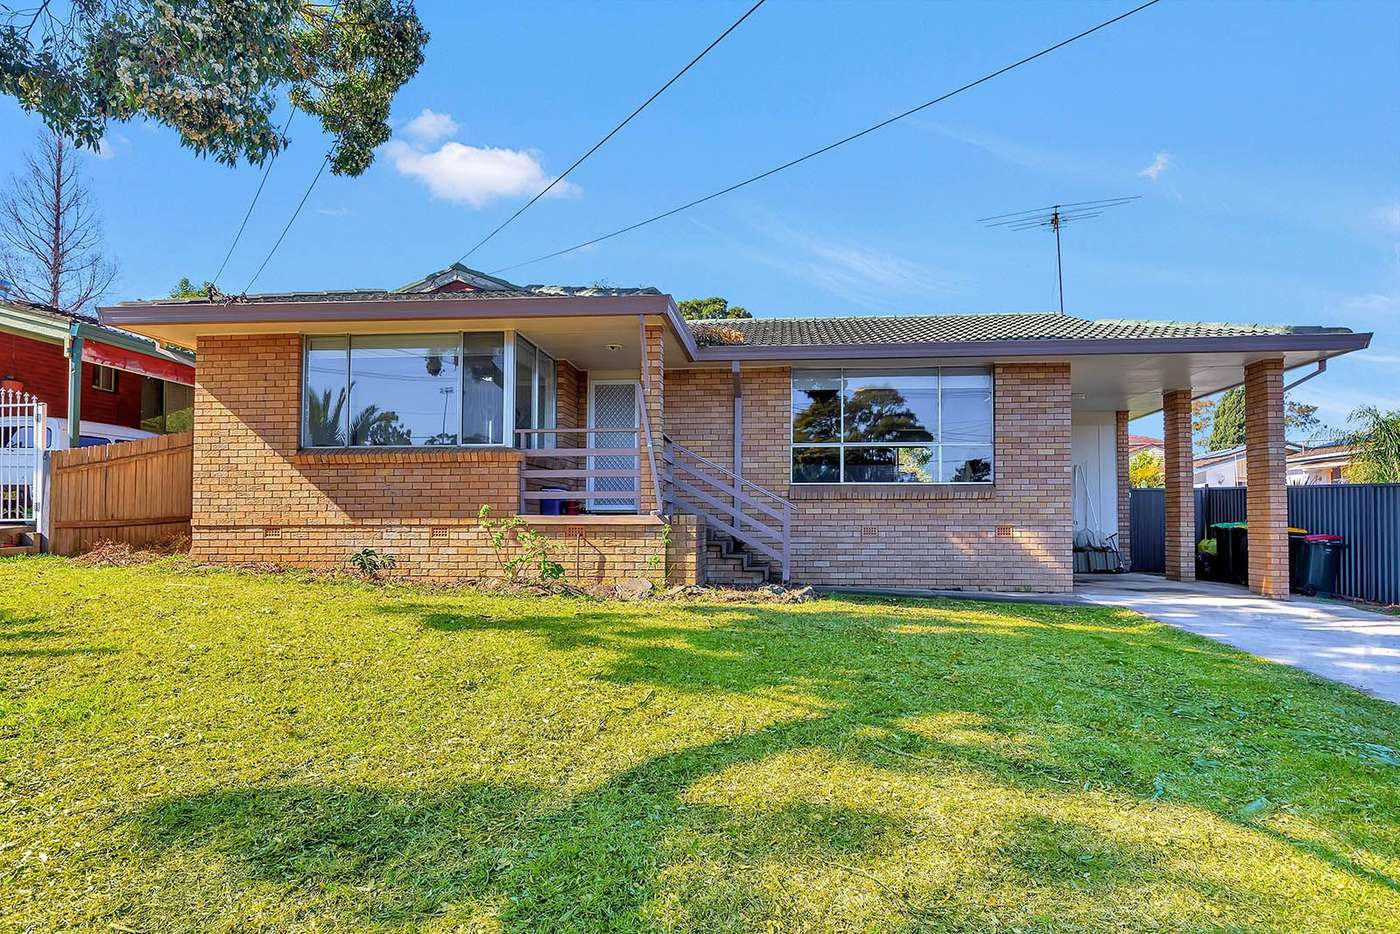 Main view of Homely house listing, 34 Gleeson Avenue, Baulkham Hills NSW 2153